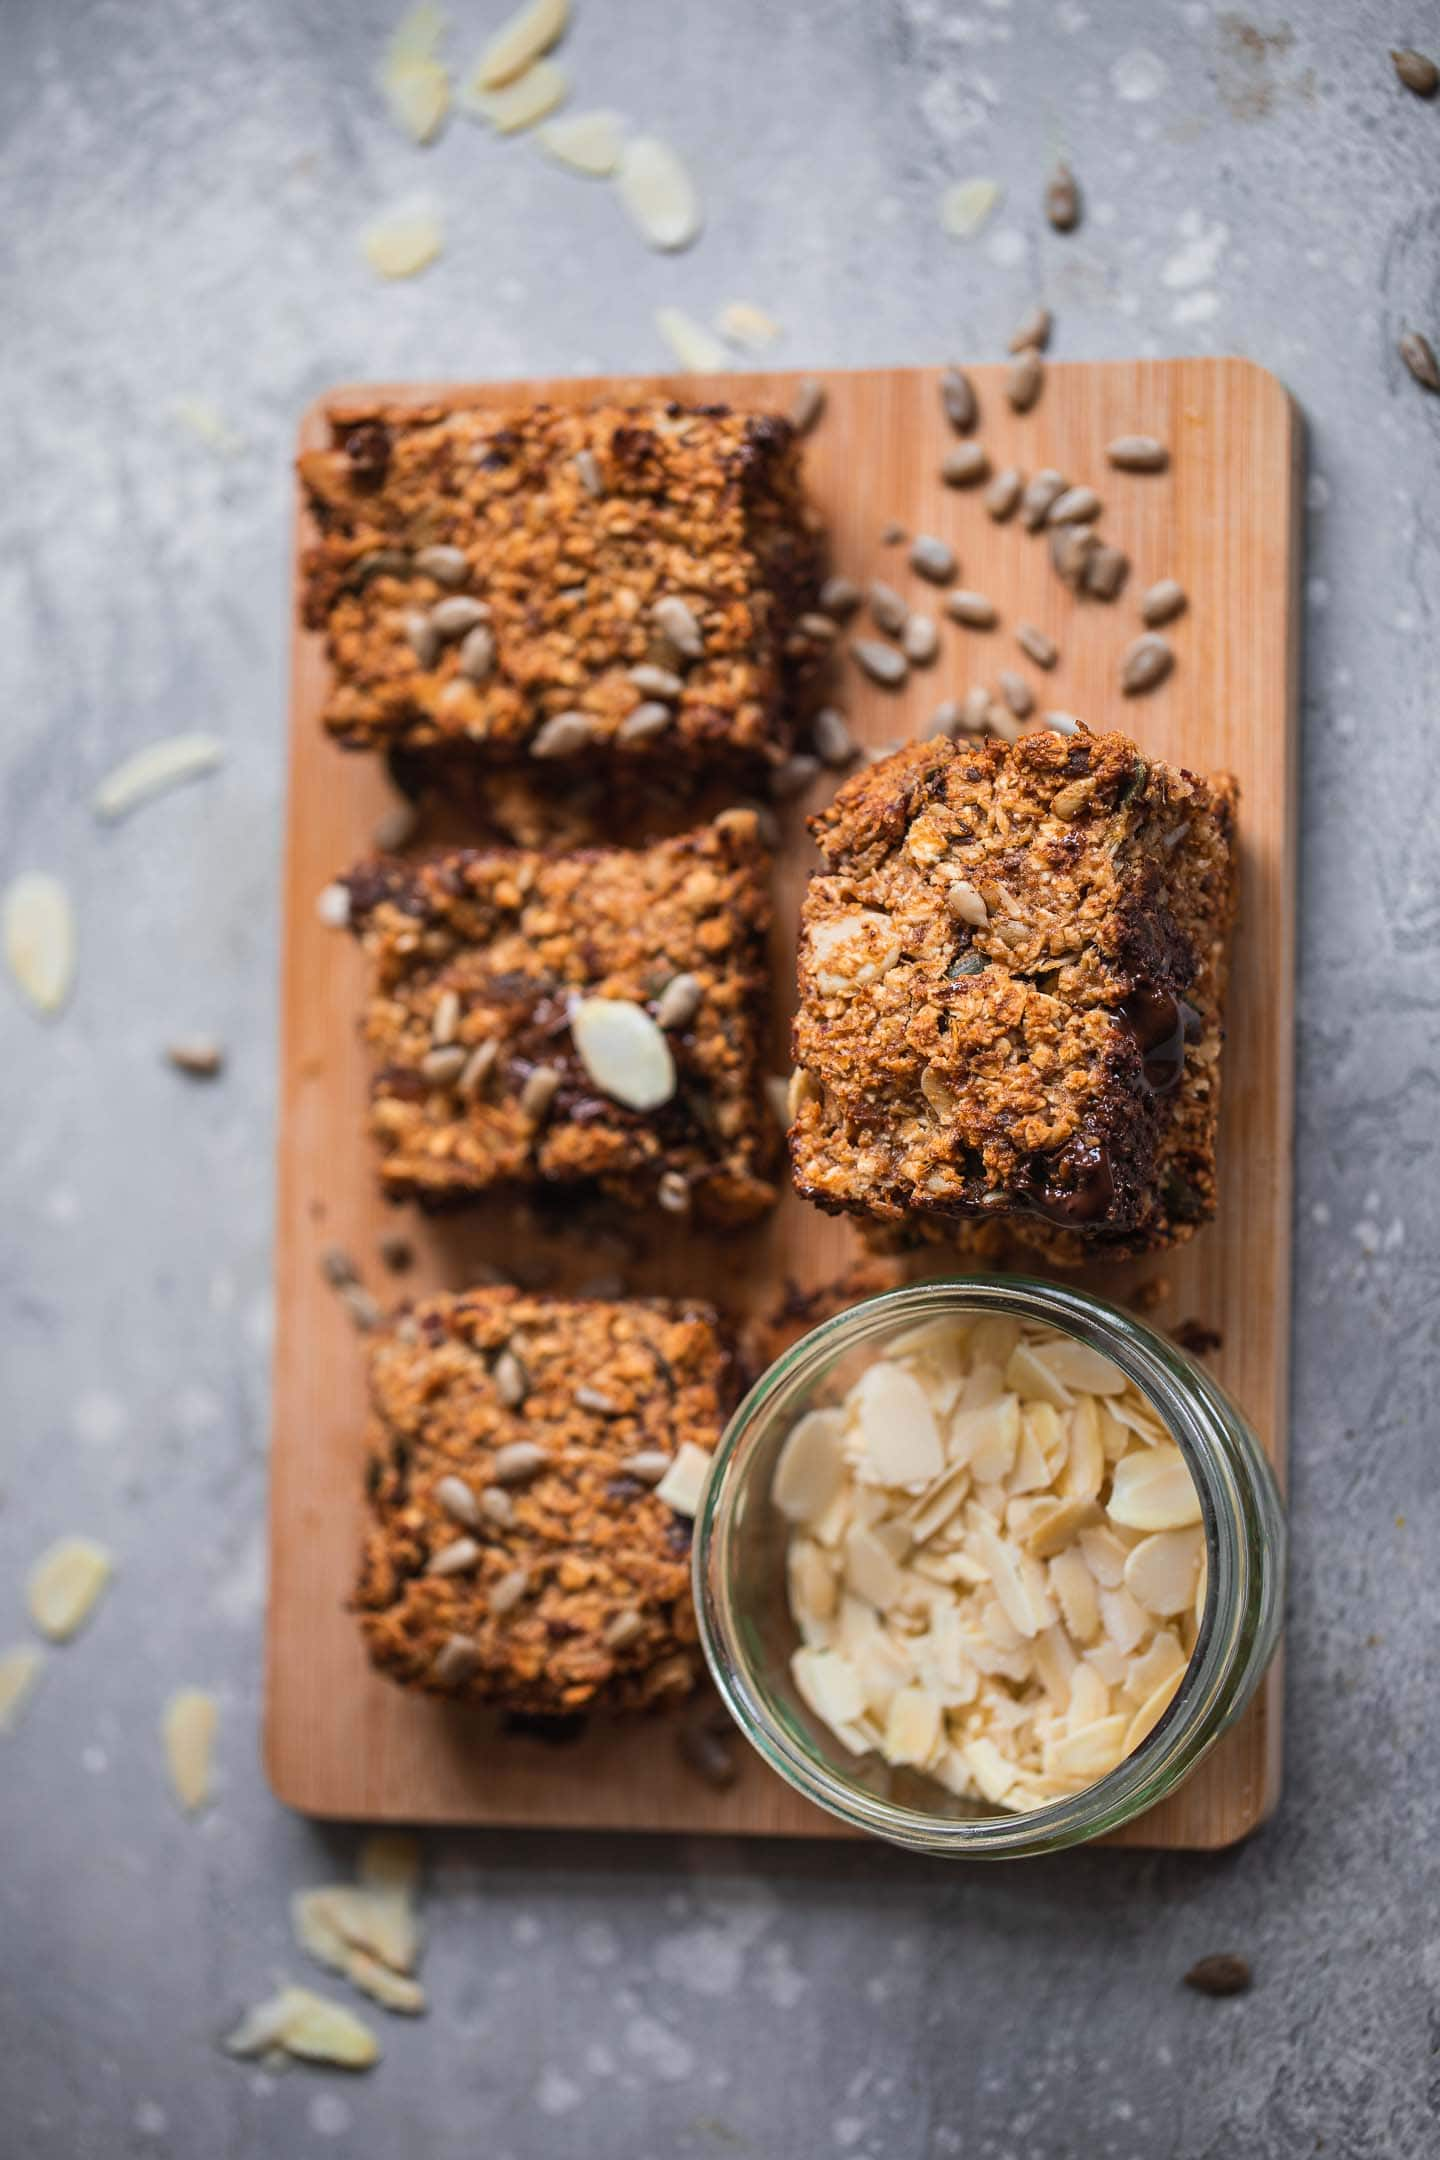 Vegan granola bars on a wooden board